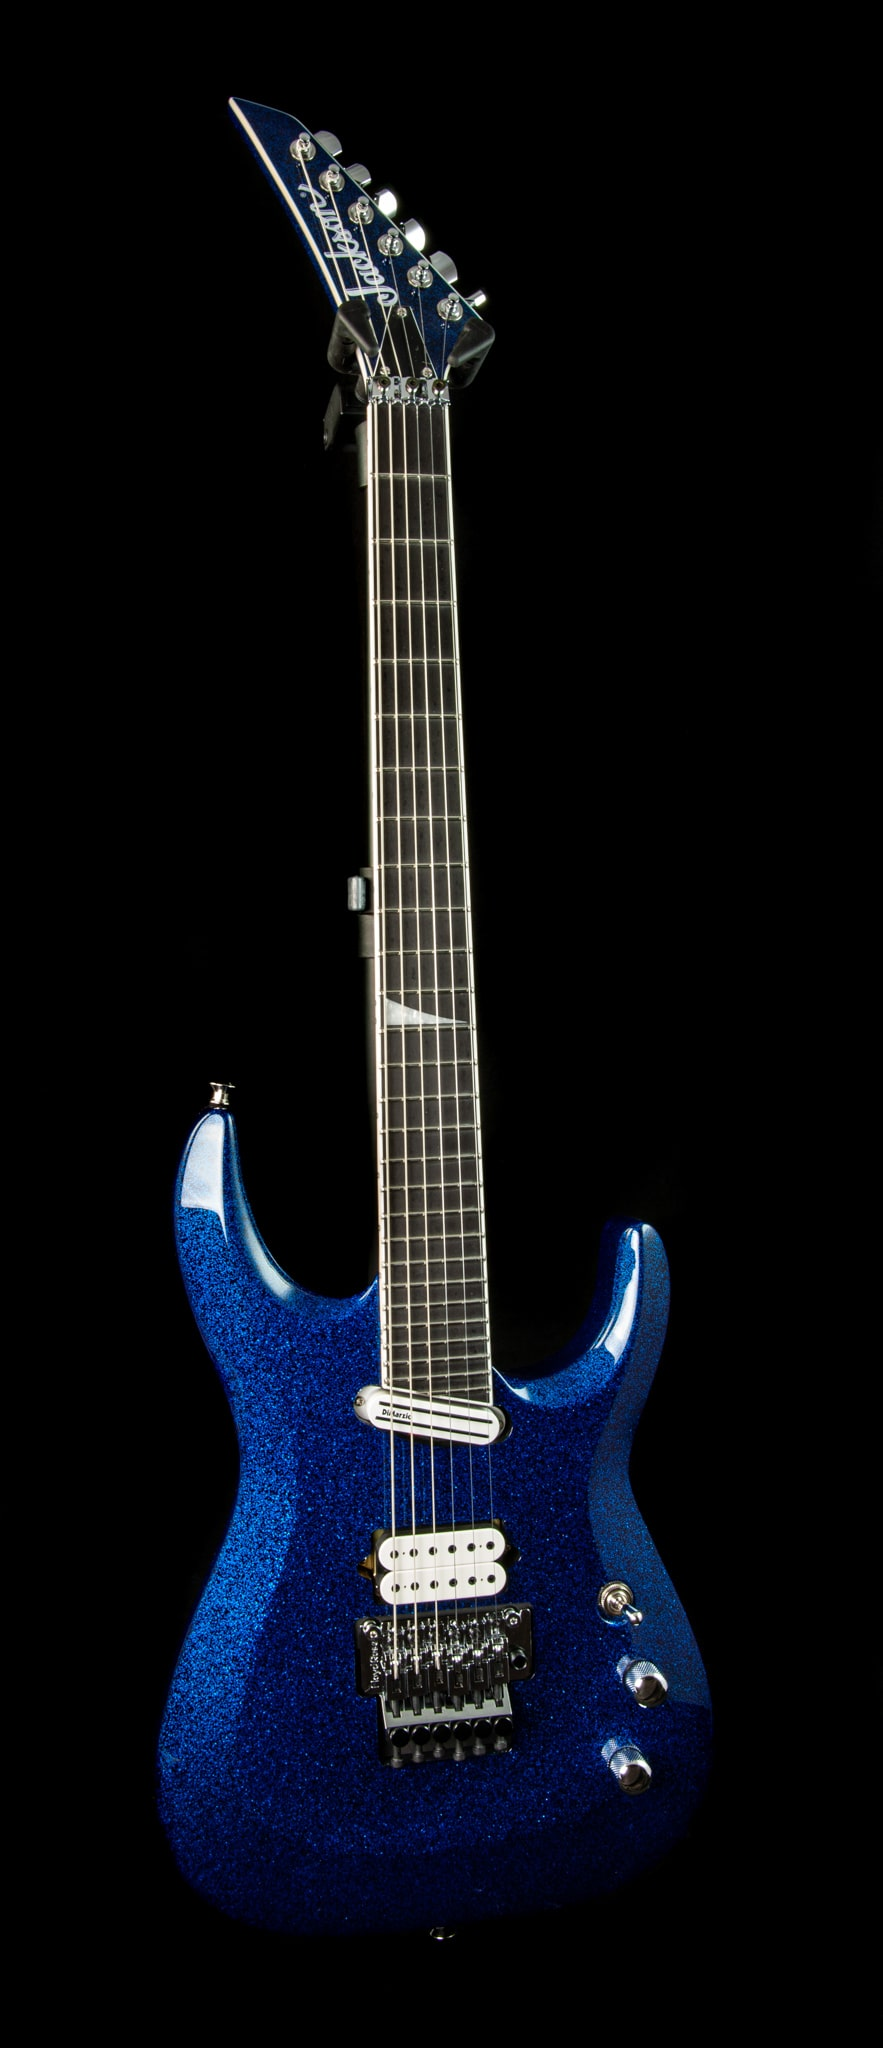 Jackson Limited Edition Wildcard Series Soloist Arch Top Extreme SL27 EX in Blue Sparkle